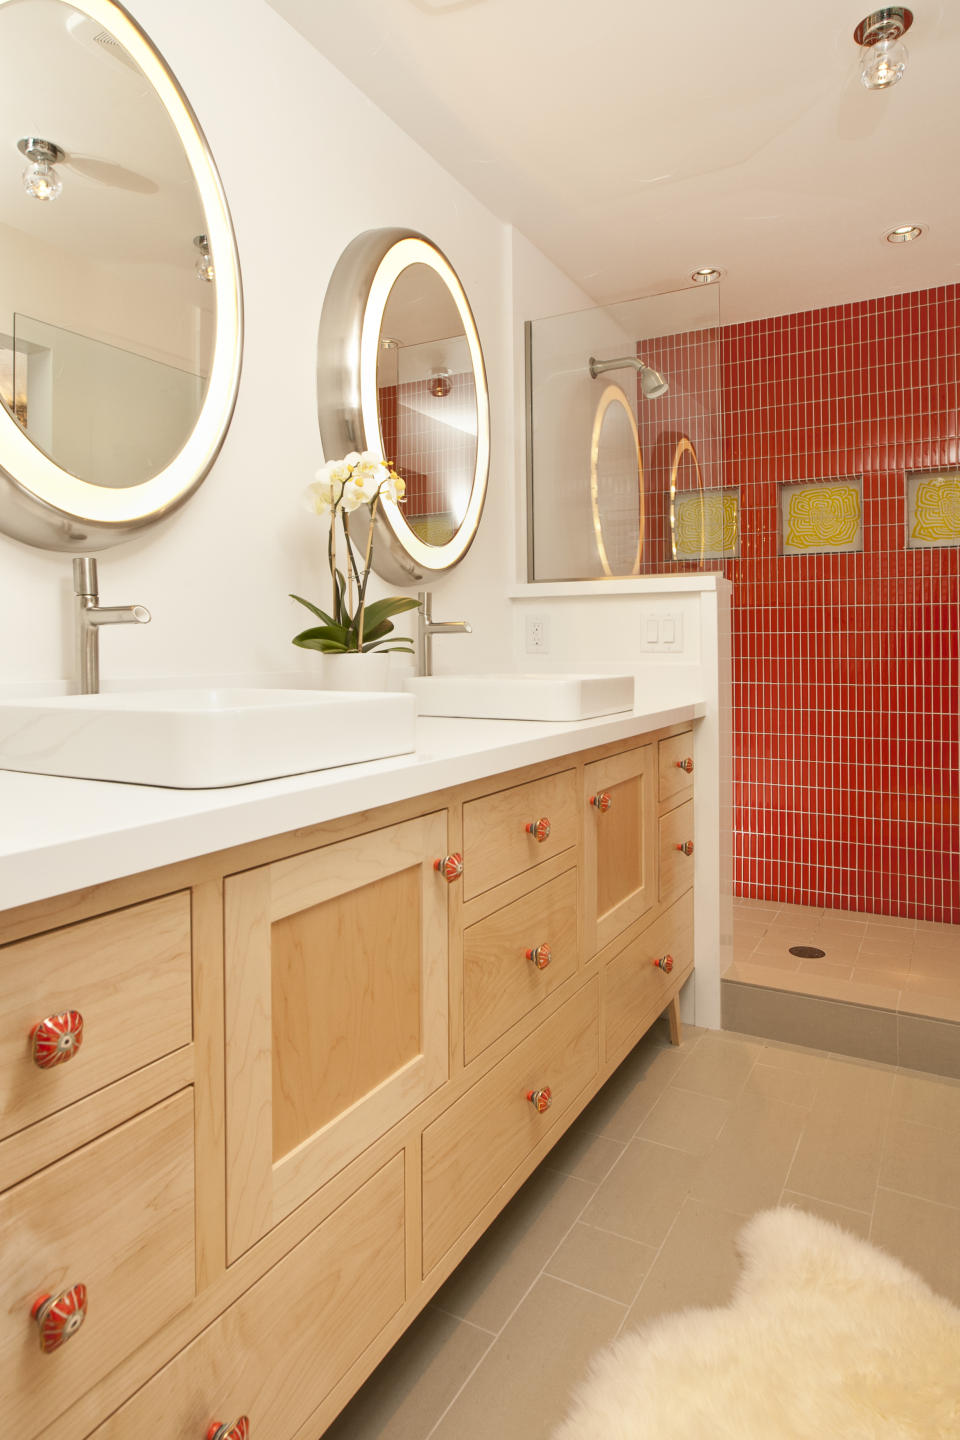 cool bathroom brings the design of a fifties automobile hop into your design. The brilliant red-tile in the stand-alone shower is the space's focal point, and it is completely triggered with the canary yellow flower tiles.